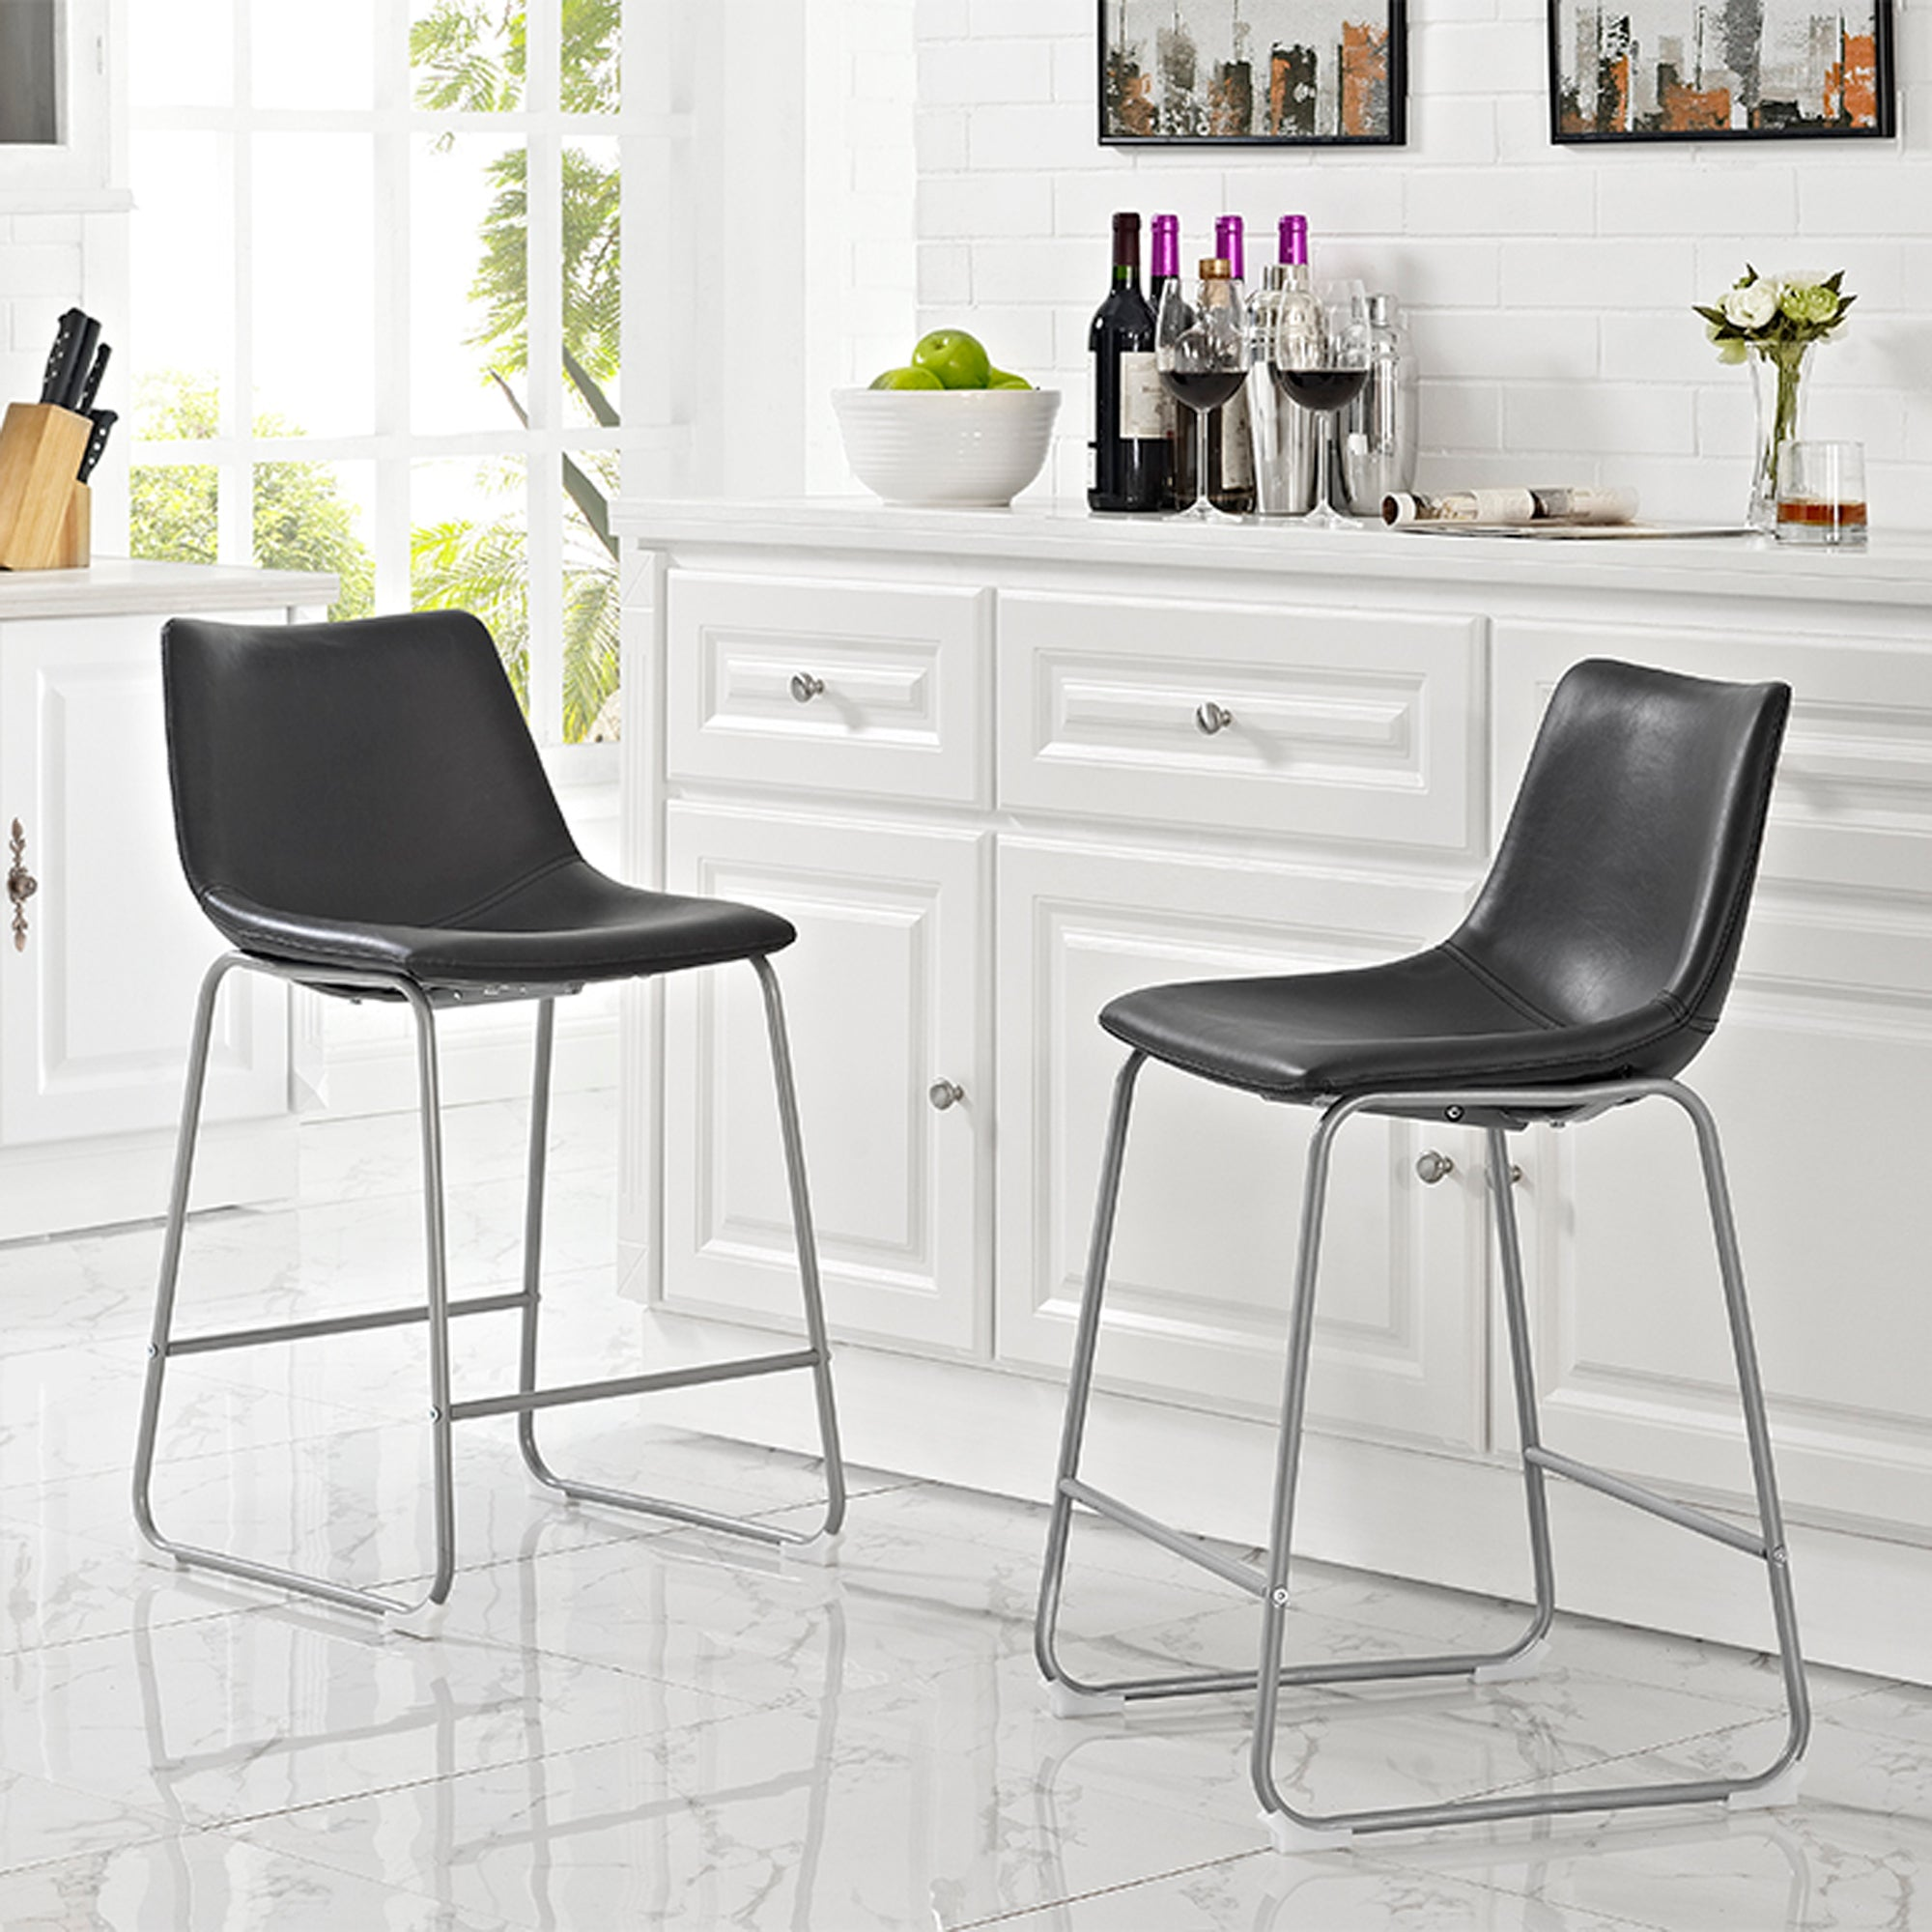 Faux Leather Dining Kitchen Counter Stools Set of 2 - Black